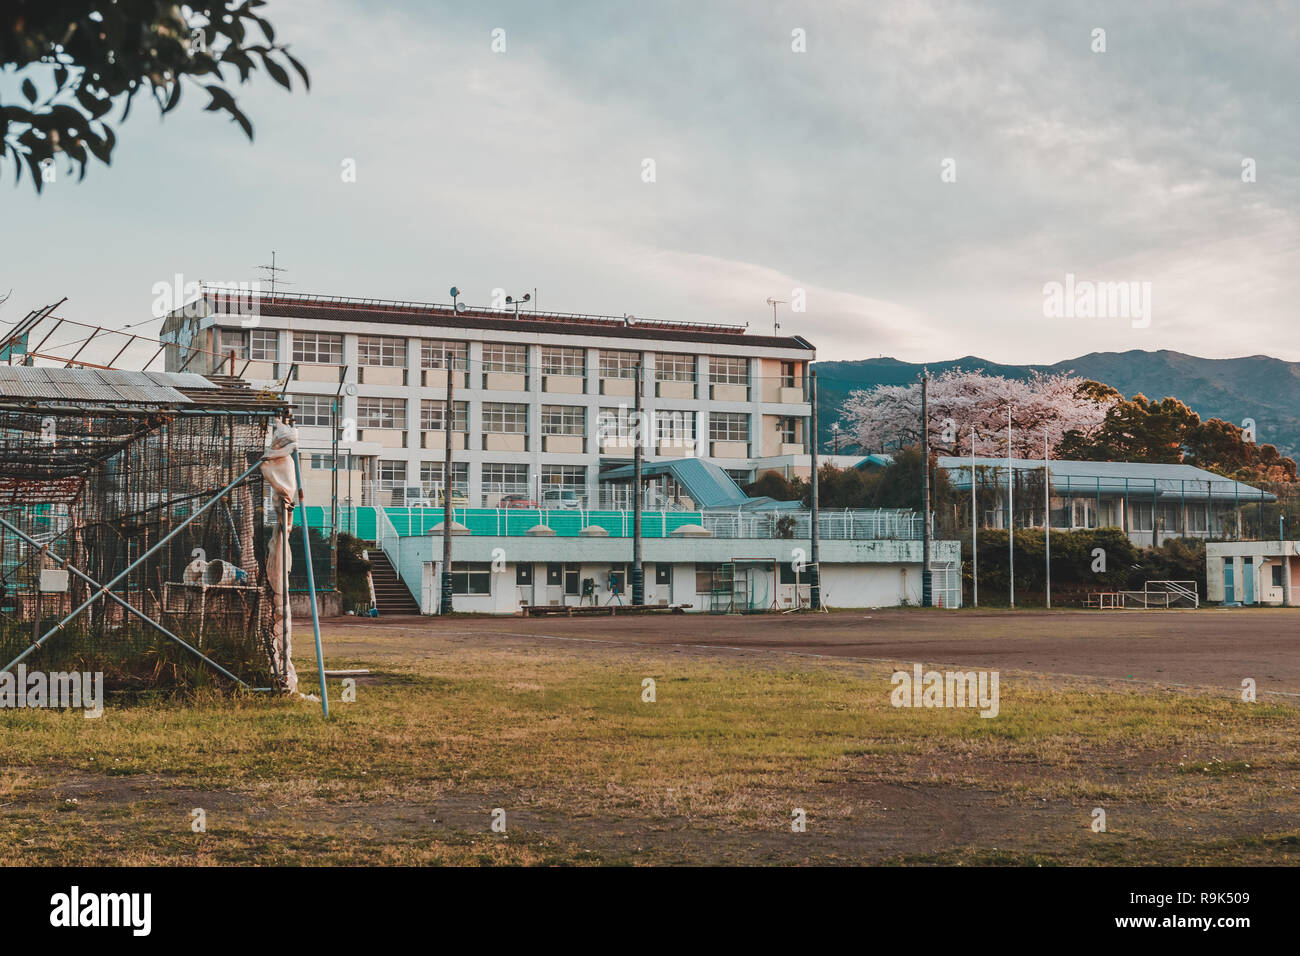 Nagaisaki Junior High School during Sunset in Spring with Cherry Blossom tree blooming. This school is known for the set of Anime, Love Live! Sunshine - Stock Image